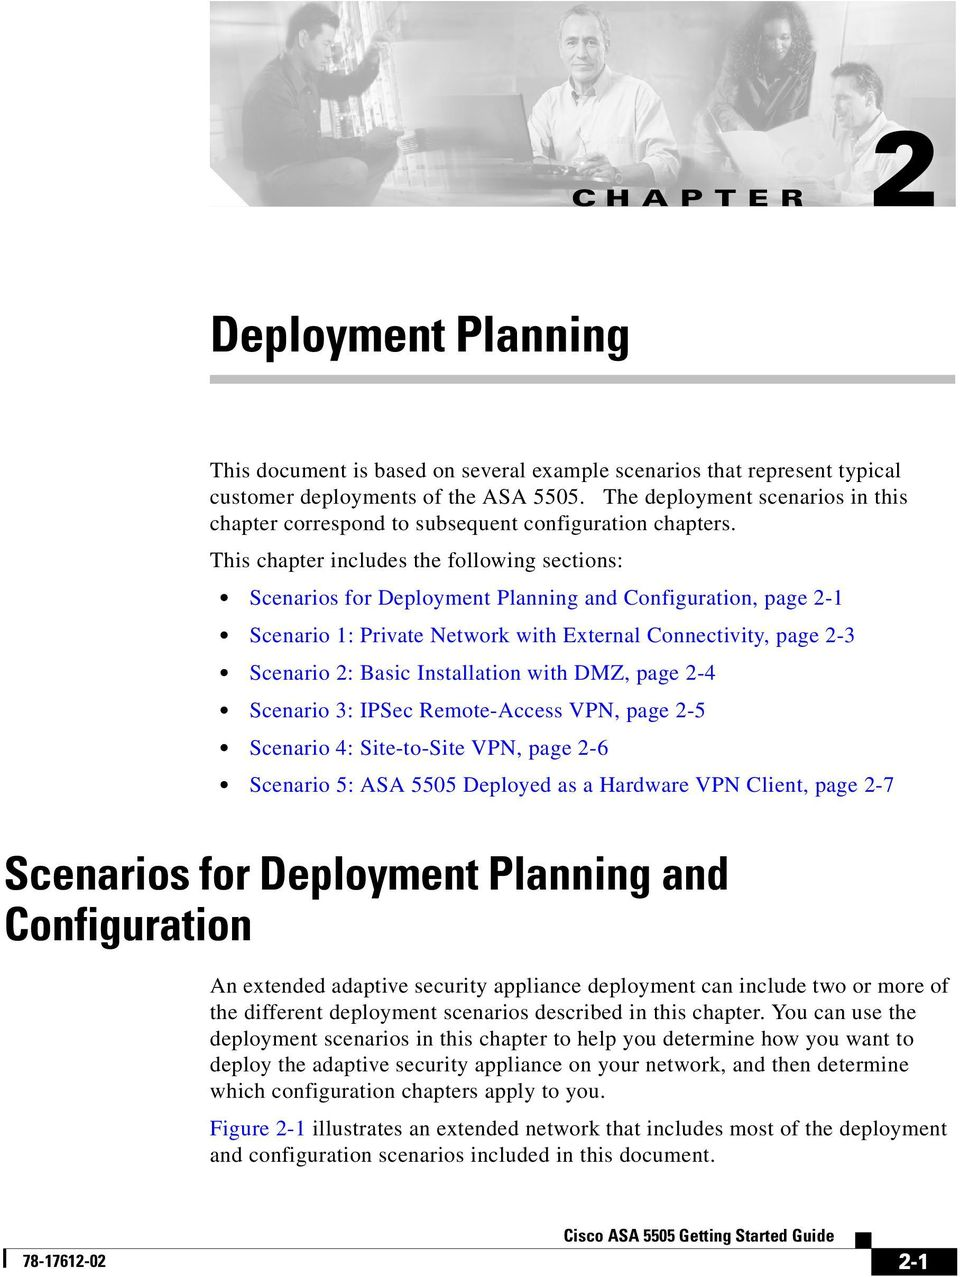 This chapter includes the following sections: Scenarios for Deployment Planning and Configuration, page 2-1 Scenario 1: Private Network with External Connectivity, page 2-3 Scenario 2: Basic